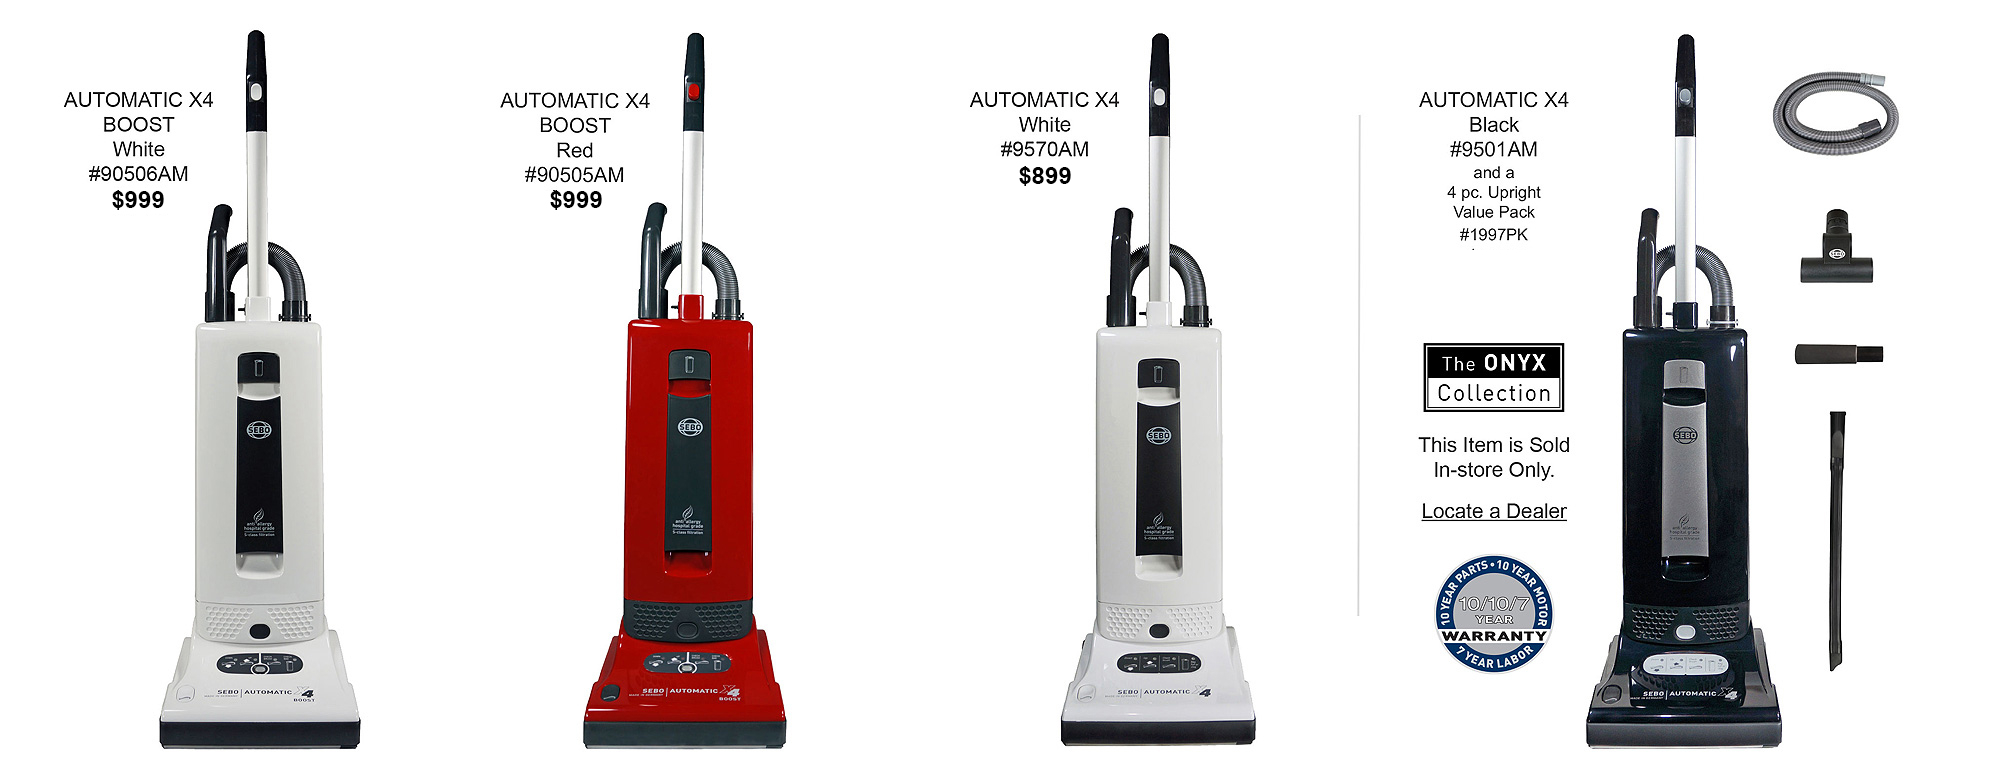 9-Foot Hose and Parquet Brush Sebo 1991AM Automatic X 3-Piece Vacuum Attachment Set with Extension Wand